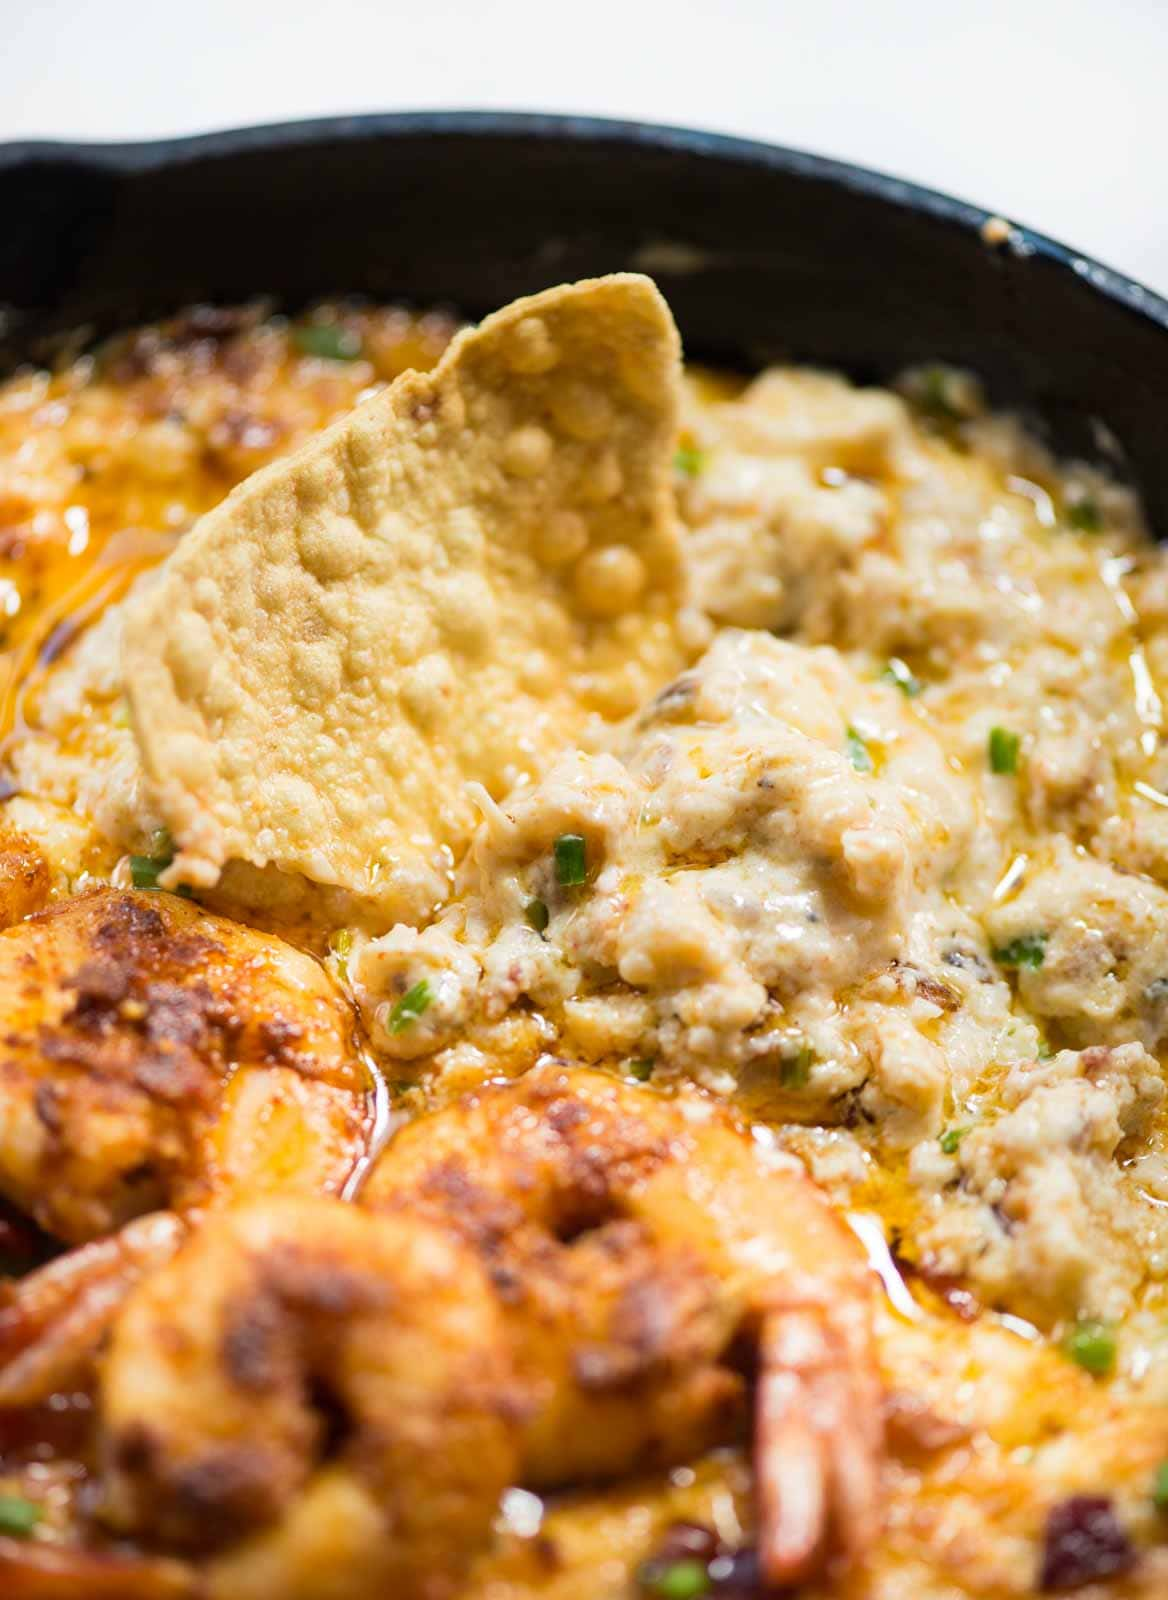 his cheesy hot Shrimp Dip with Bacon with juicy shrimp and three types of cheese is a showstopper on your party appetizer menu. Hot Bubbly shrimp dip is also Keto and low carb.